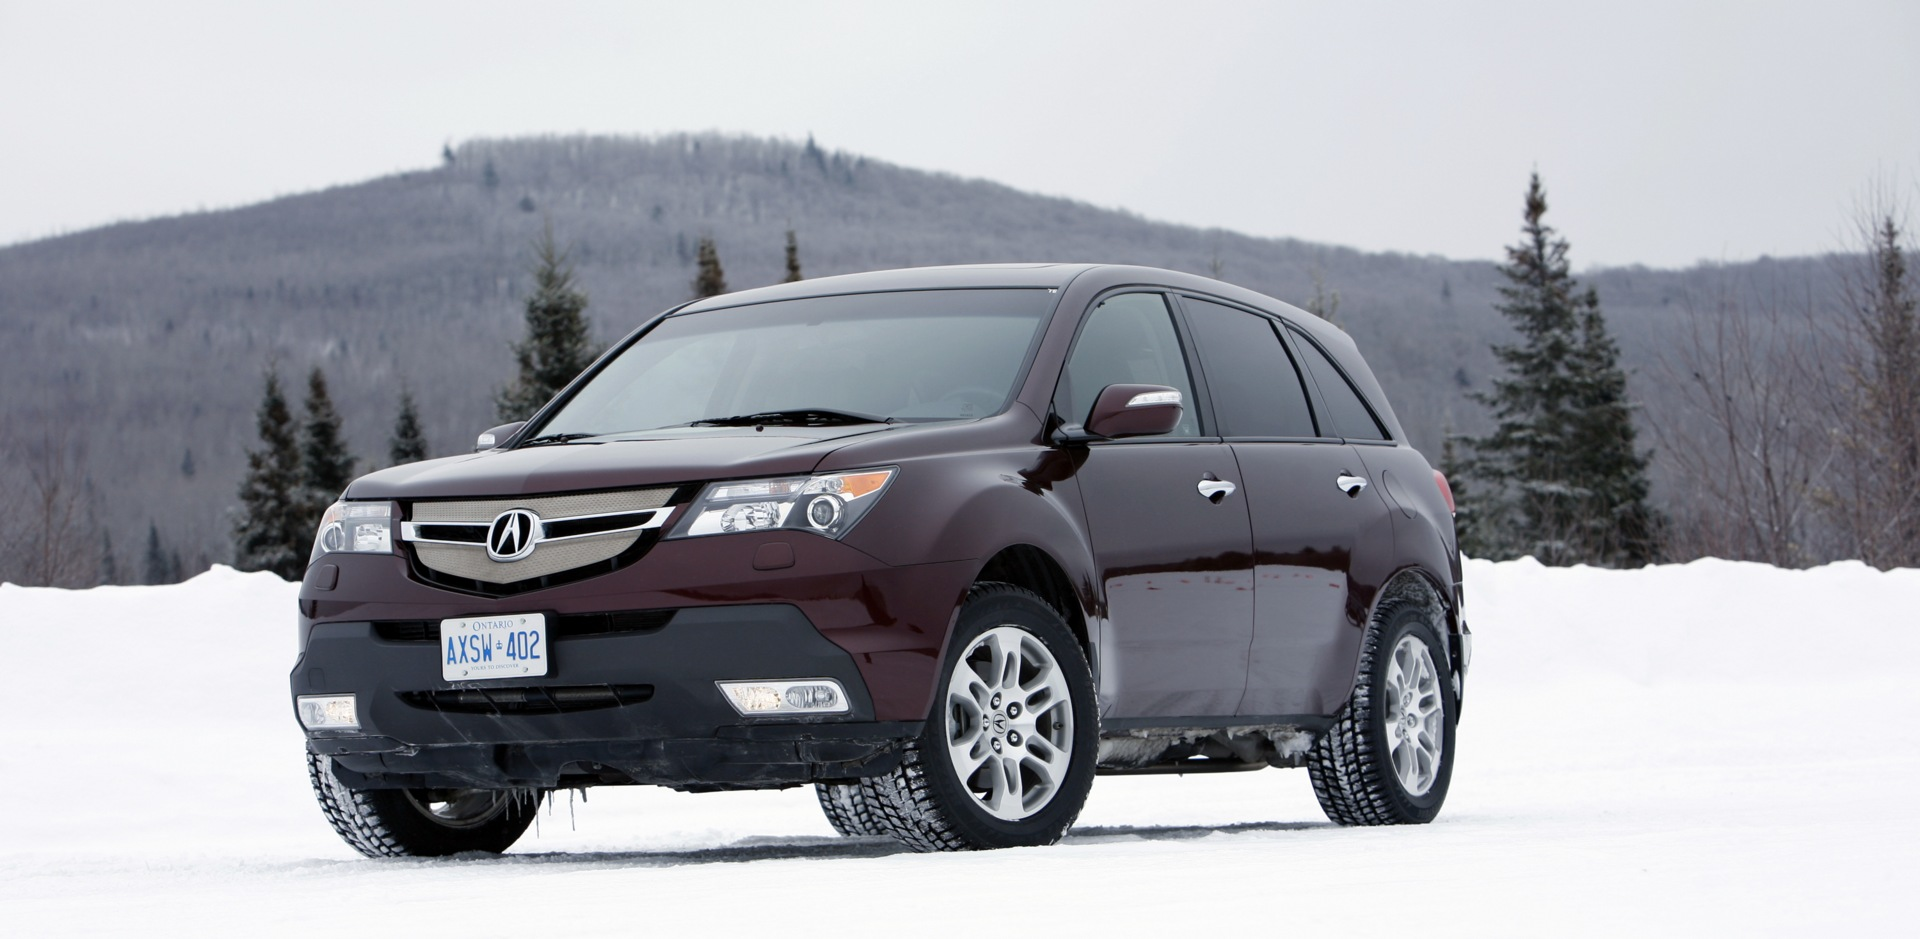 2008 acura mdx. Black Bedroom Furniture Sets. Home Design Ideas